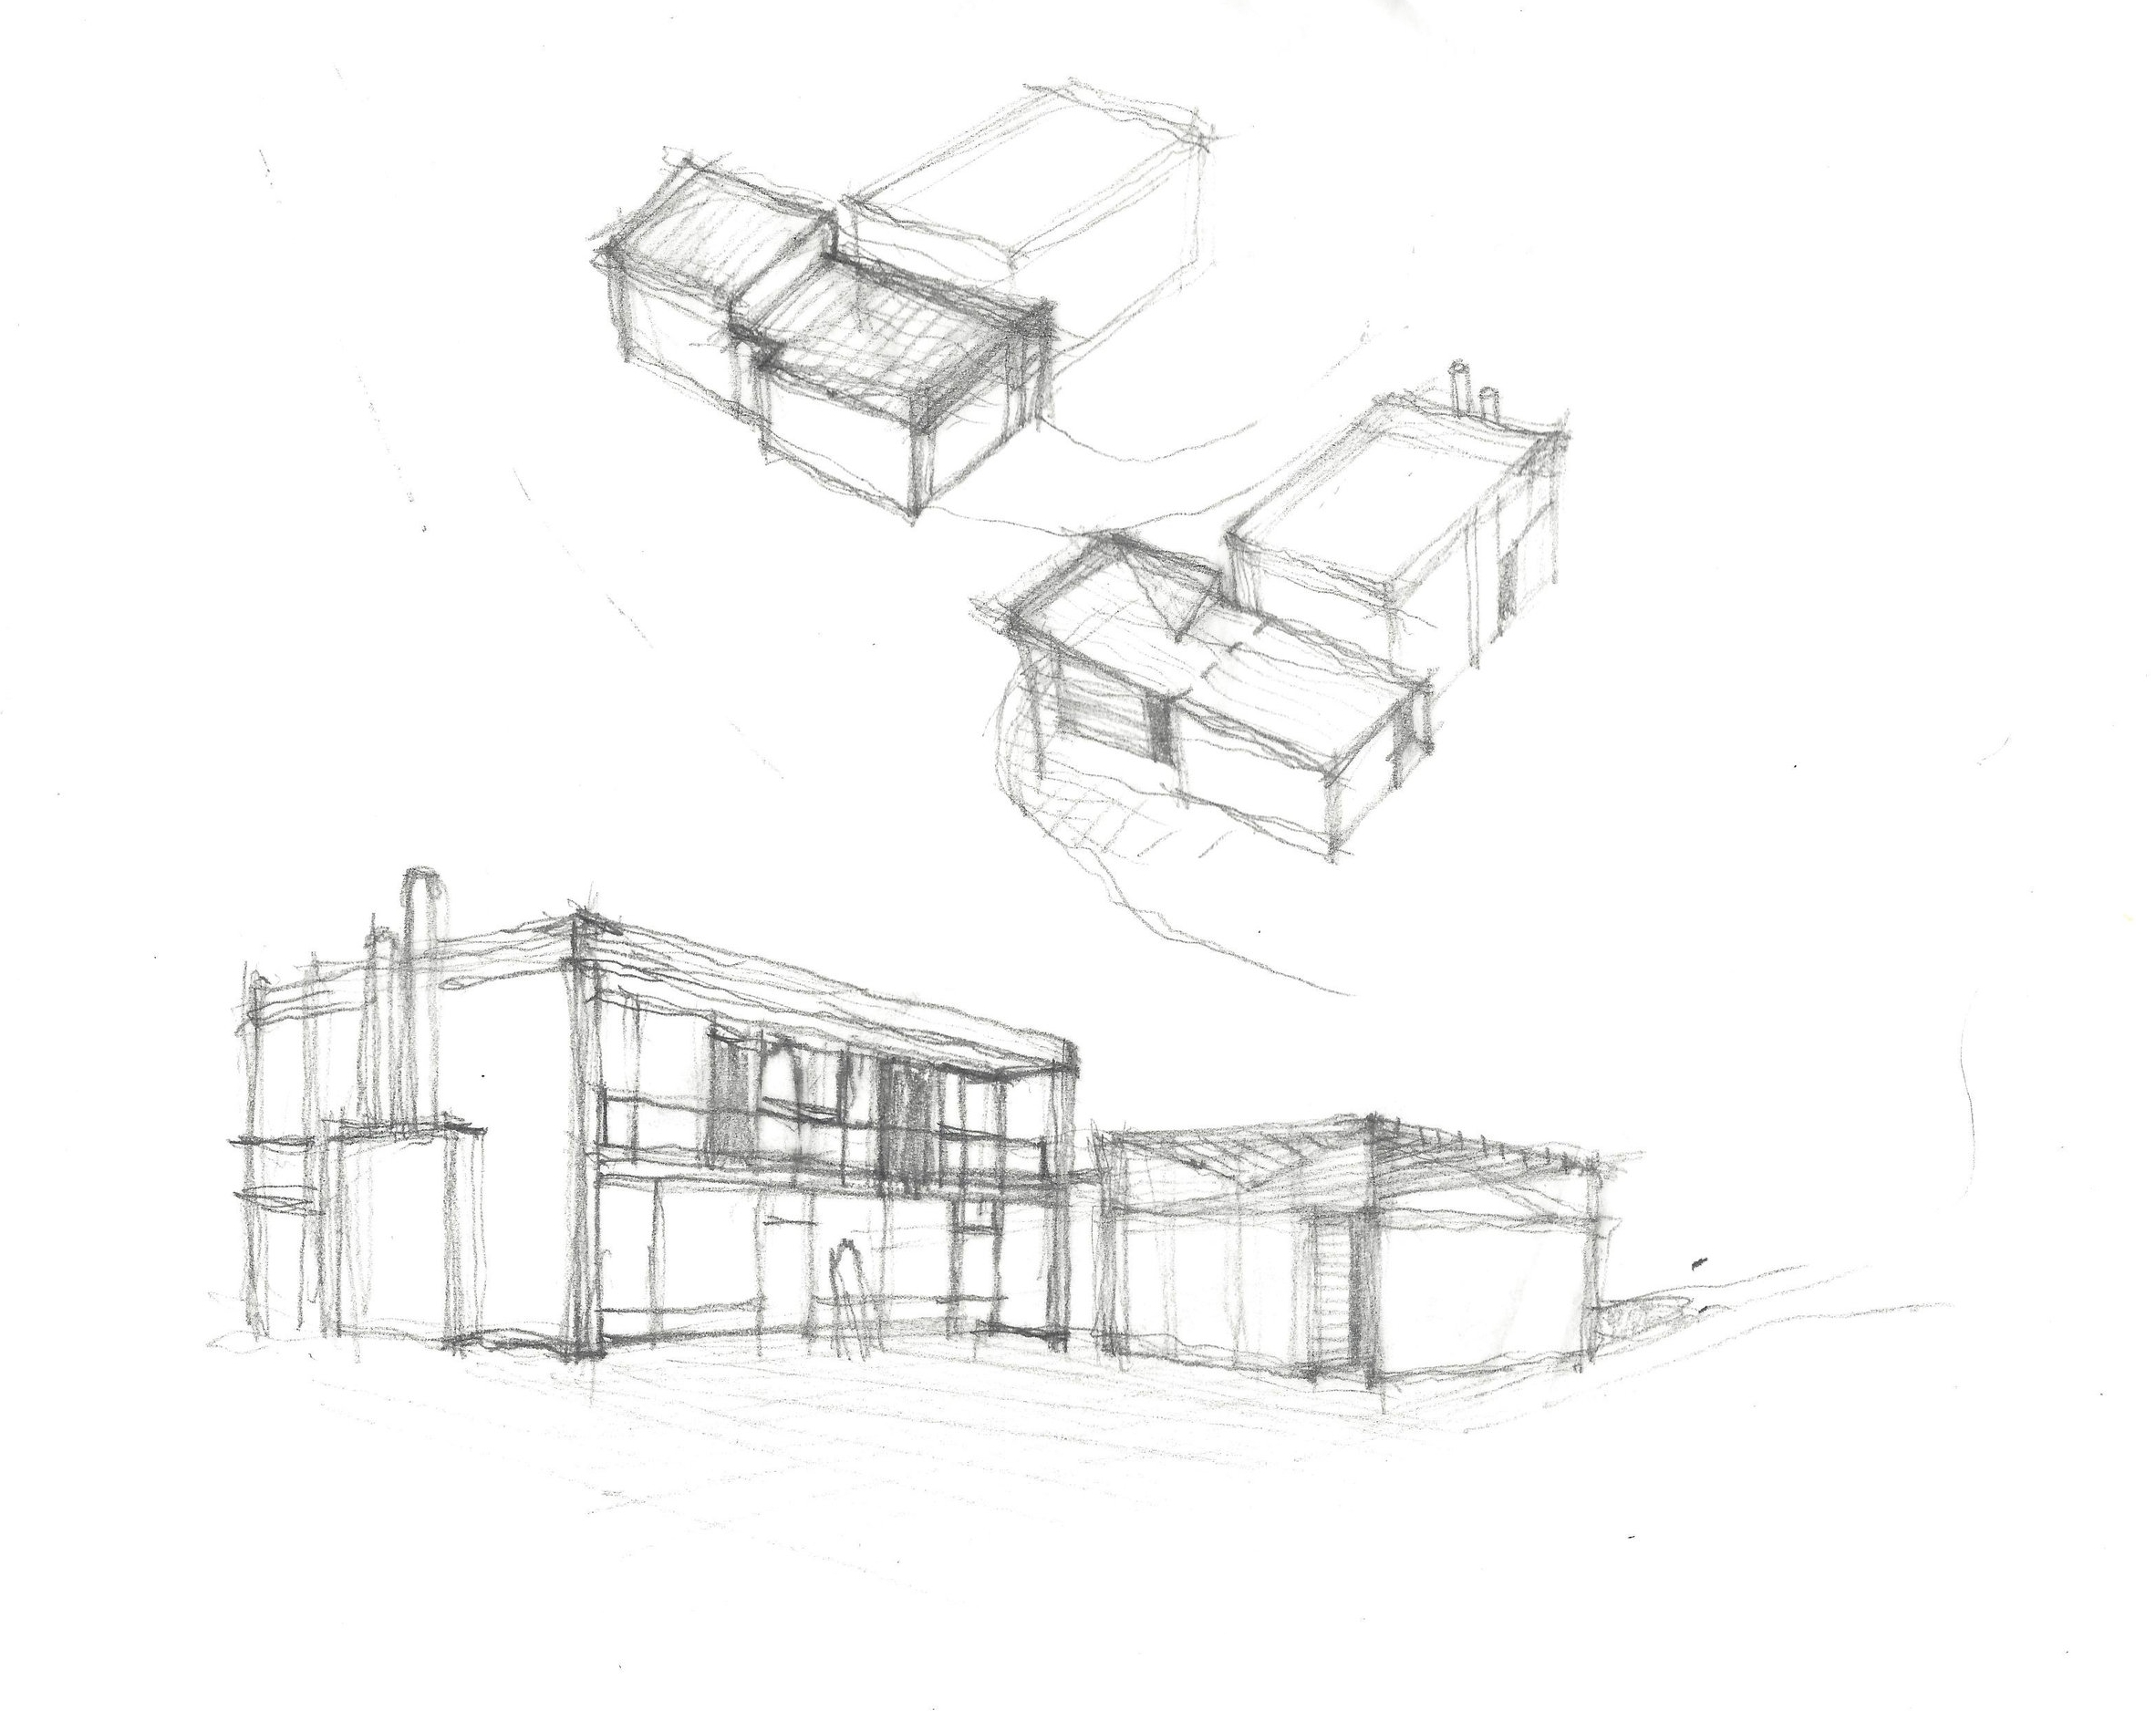 050415 Tedesco Res Concept Sketch.jpg